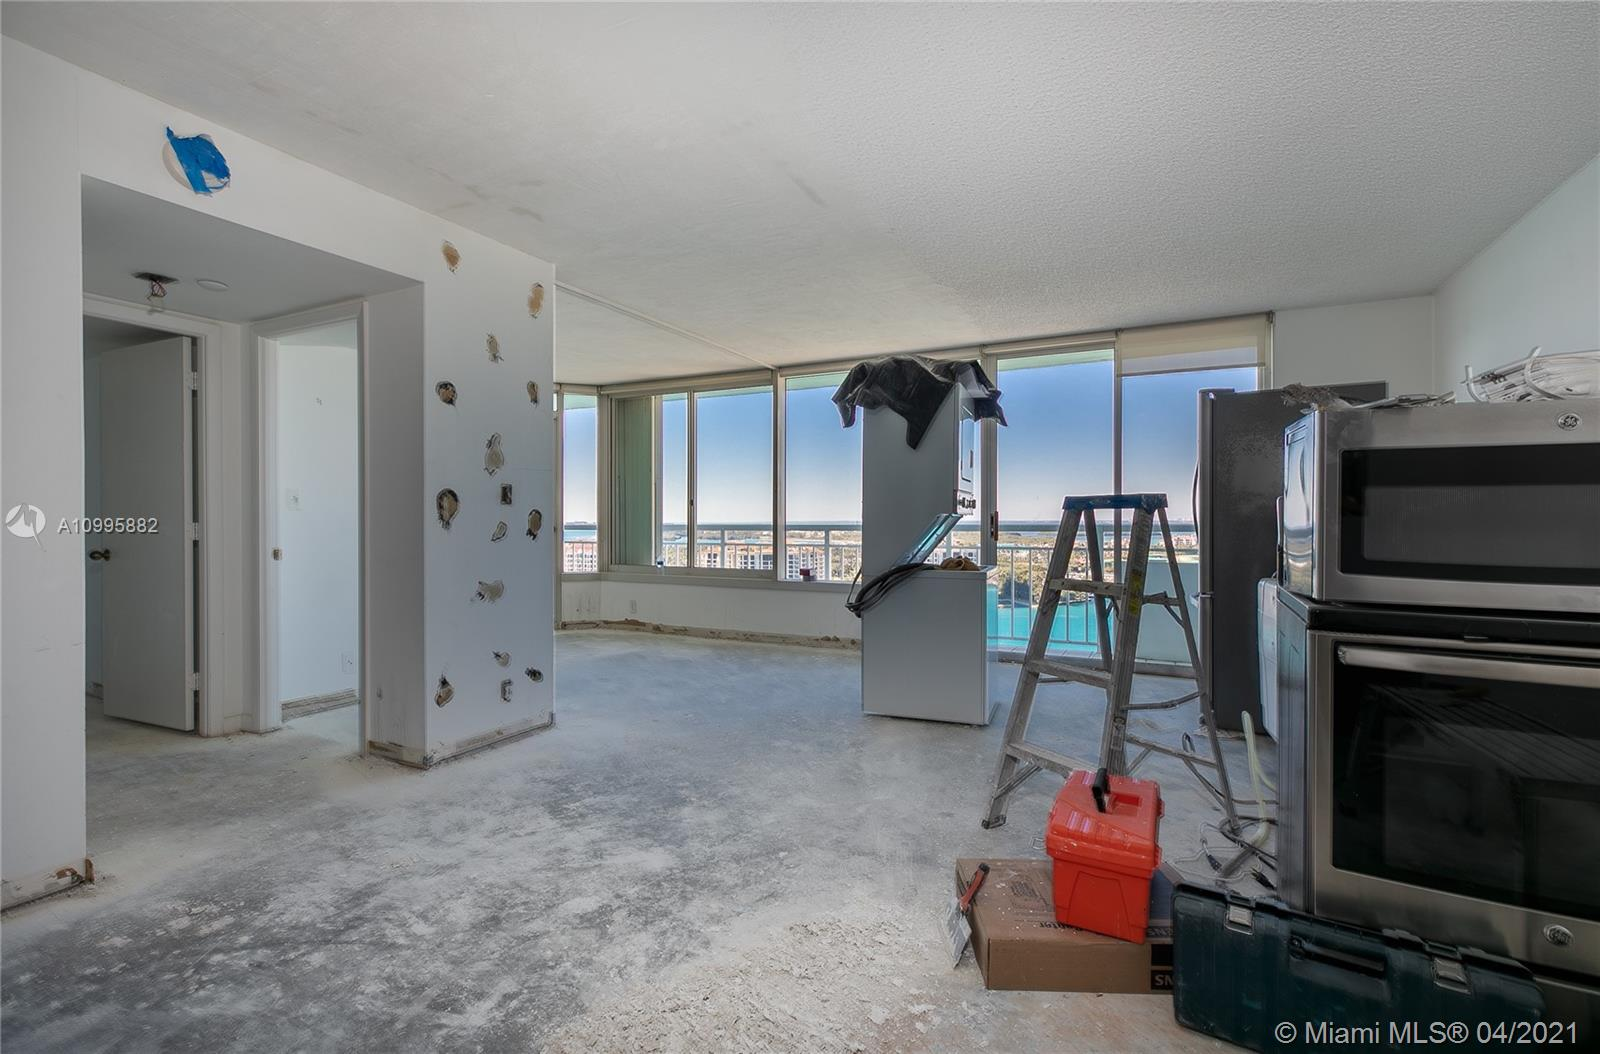 Unique opportunity to purchase 2 bedroom, 2 bath unit which is currently undergoing a gut renovation. The unit has been completely demolished and all permits have been issued. Unit will be sold as finished unit and is scheduled for completion in June. Unit is one a few 05 units to feature an extended balcony which allows for floor to ceiling windows. High floor views of Govt Cut, Fisher Island and Miami skyline. The building is in the final stages of a major renovation encompassing new pool deck, tennis courts, landscaping, interior hallways and fitness center. All assessments have been paid.